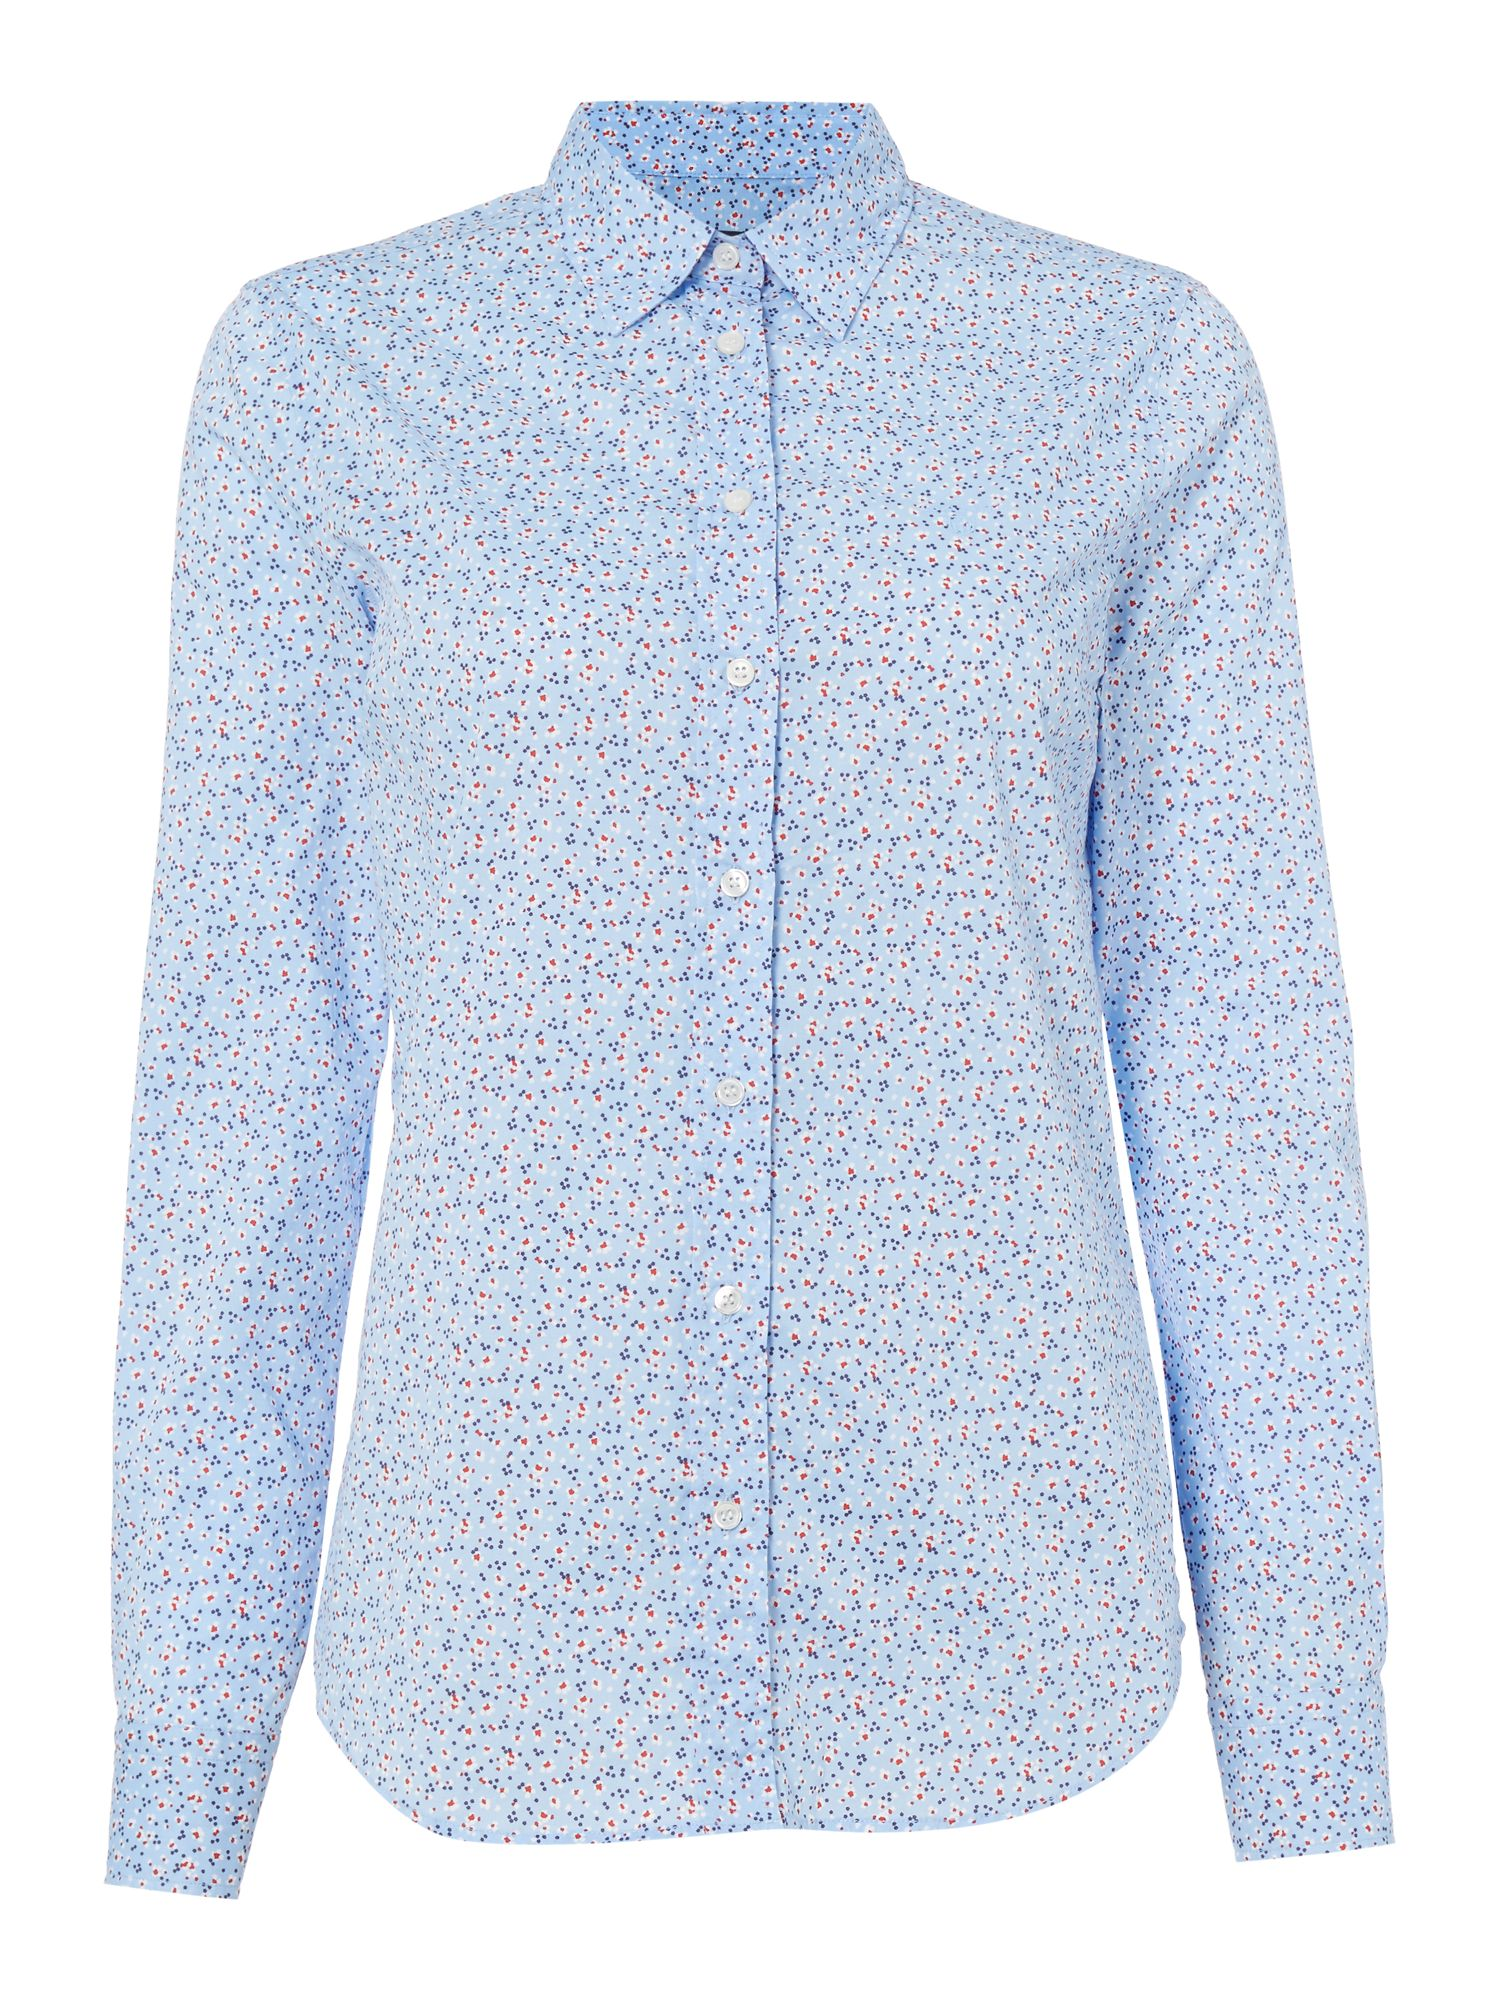 Gant Mini meadow floral stretch shirt, Blue